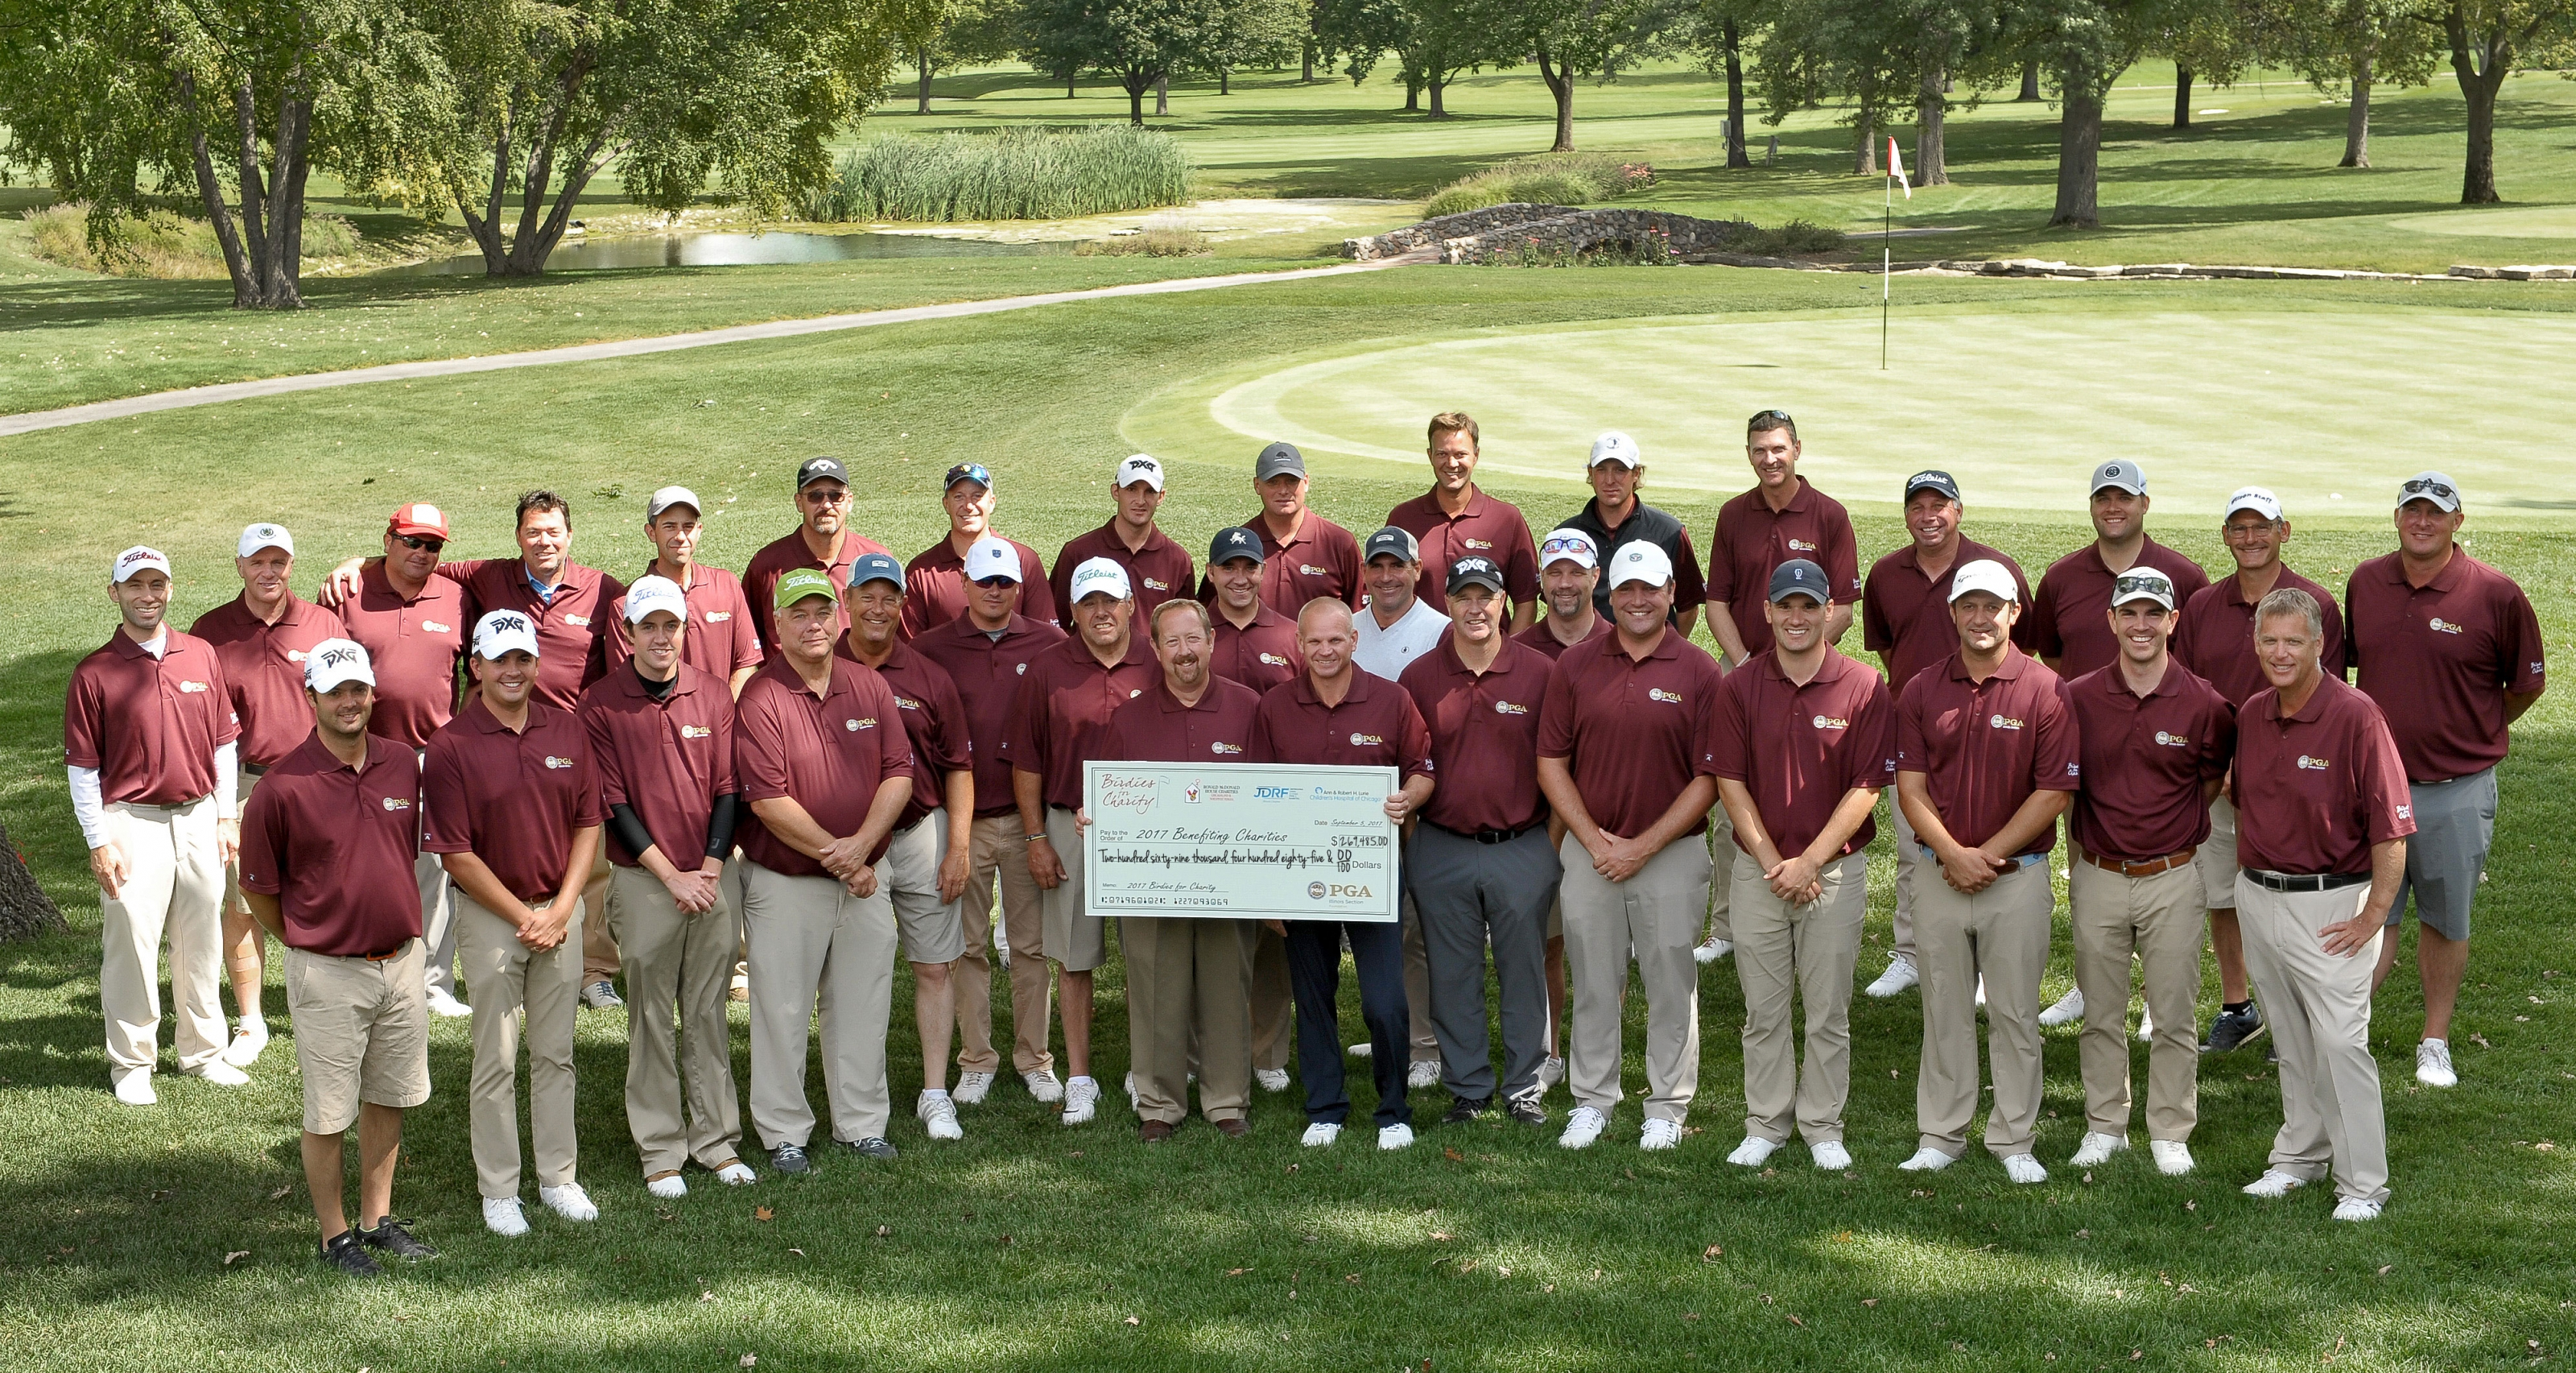 Illinois PGA Professionals Raise Record Amount For Children's Charities